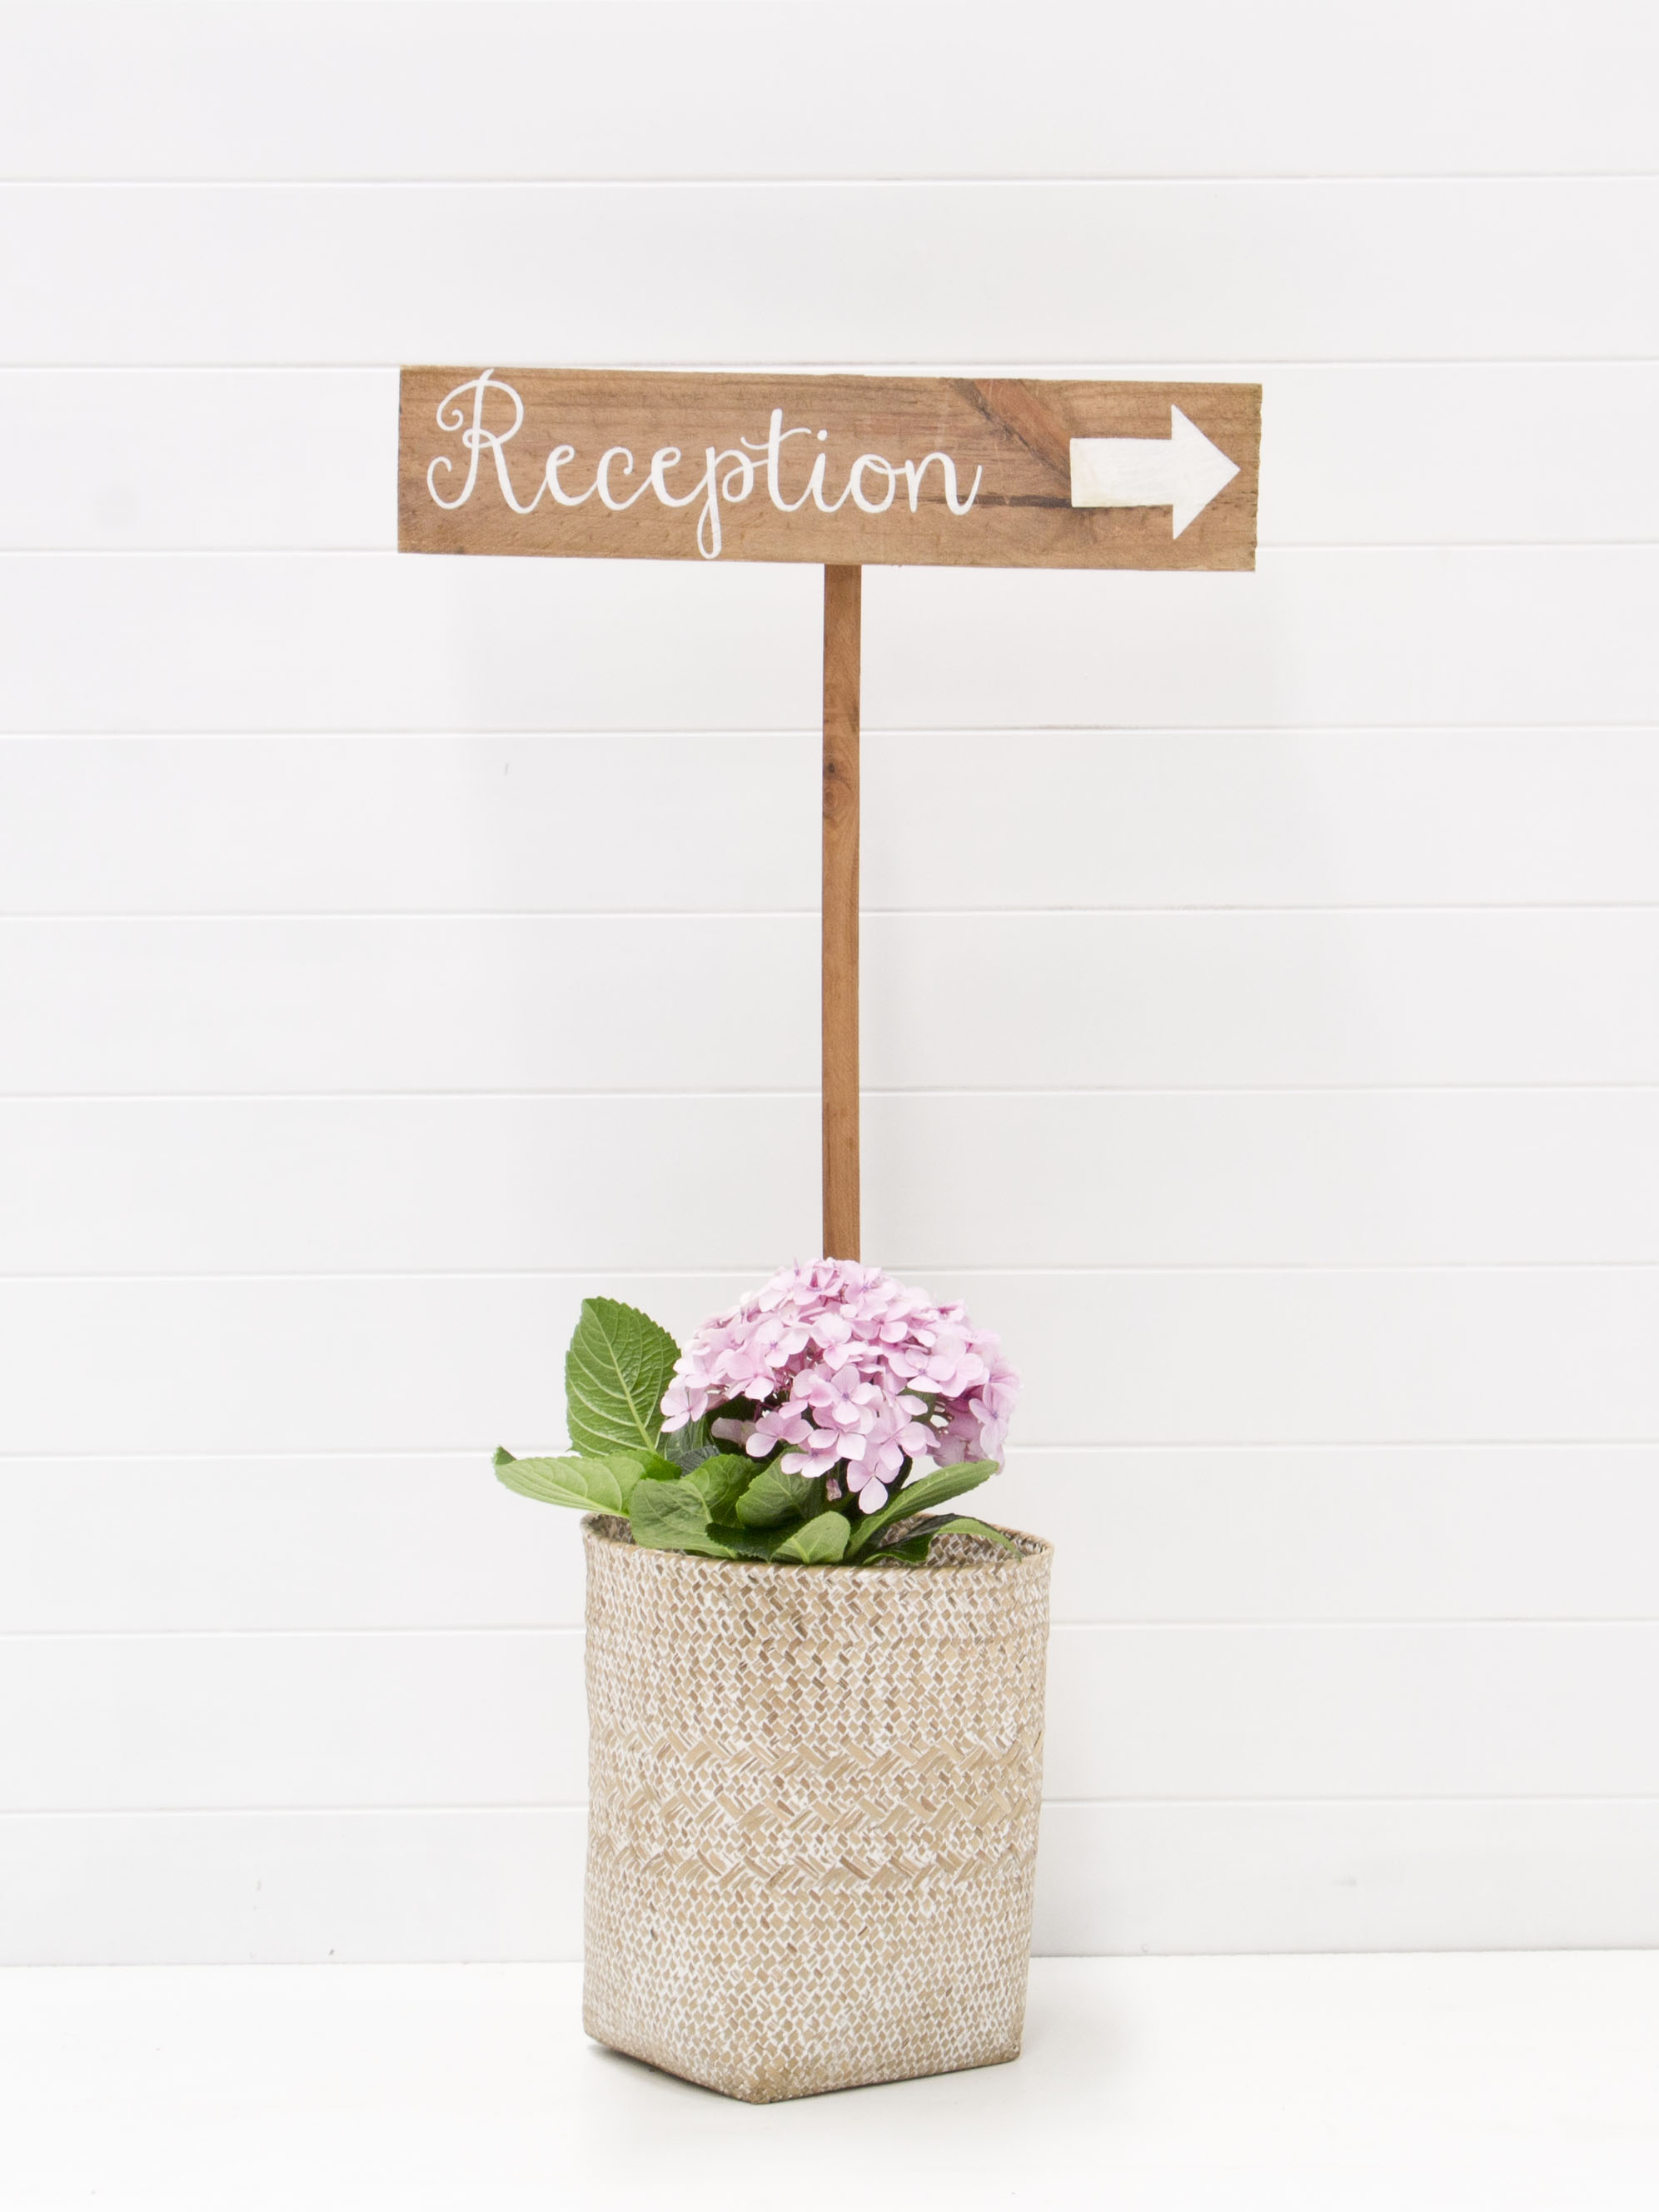 Reception wooden sign.jpg